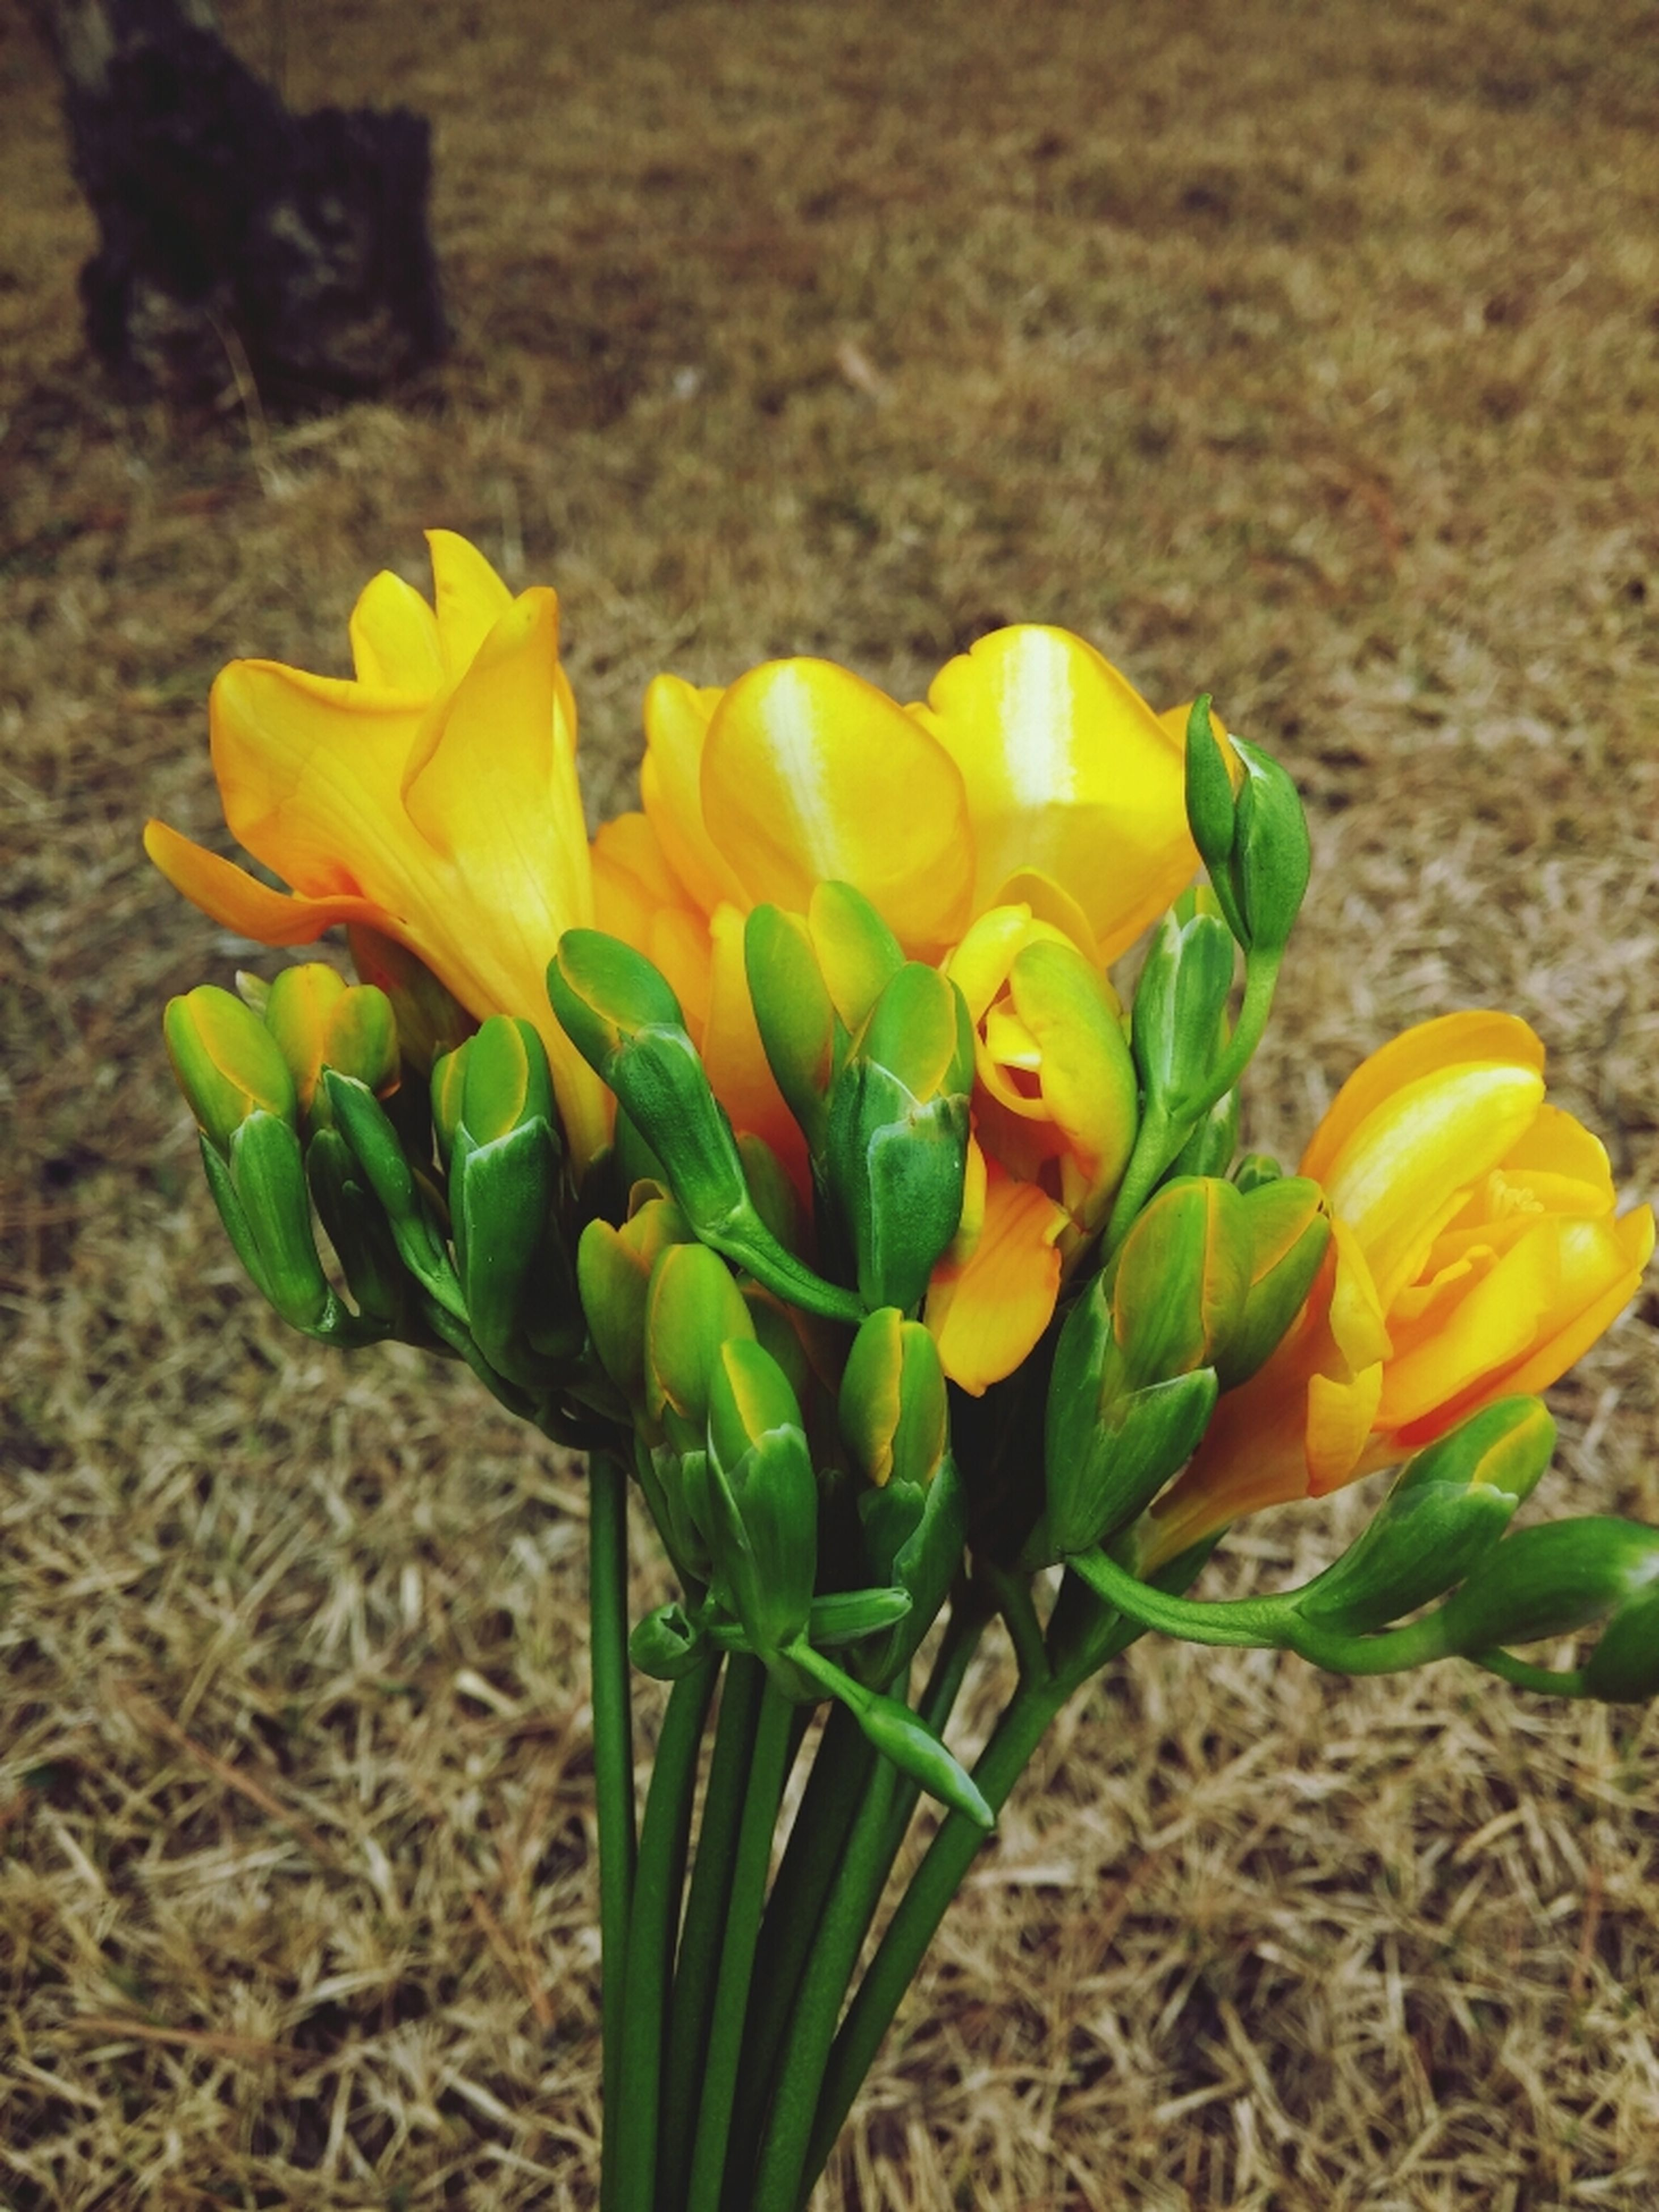 flower, yellow, freshness, petal, fragility, growth, flower head, plant, beauty in nature, tulip, nature, field, close-up, blooming, focus on foreground, stem, bud, leaf, in bloom, growing